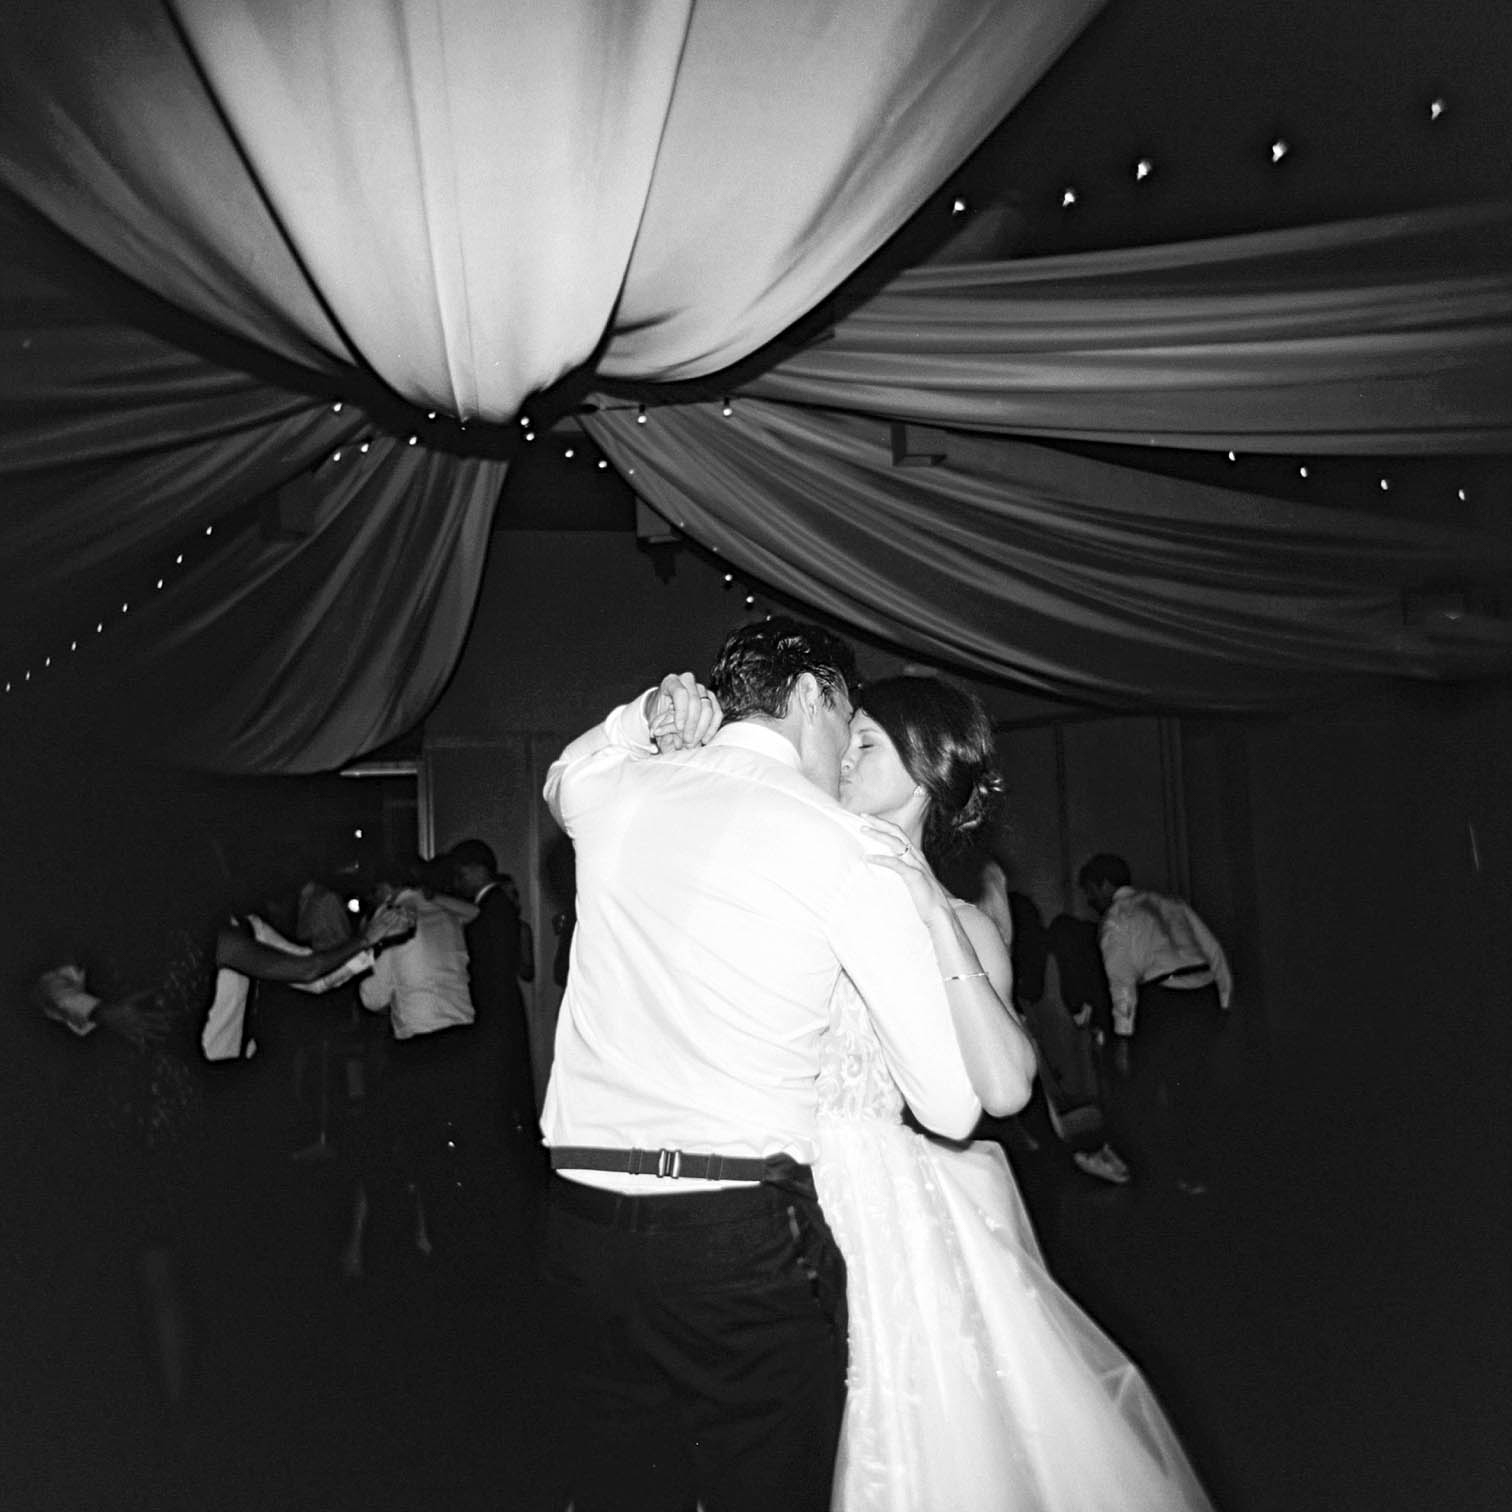 Boulder Weddings, Colorado Wedding Photographers, Denver Wedding Photographers, Film Photographers, Rolleiflex Camera, Colorado Weddings, Danielle DeFiore Photography, Denver Weddings, Boulder County Club Weddings, Classic Weddings In Colorado, Black Tie Weddings, Country Club Weddings, Church Weddings In Colorado, Best Wedding Photographers In Colorado, Chautauqua Park, Holga Wedding Photos